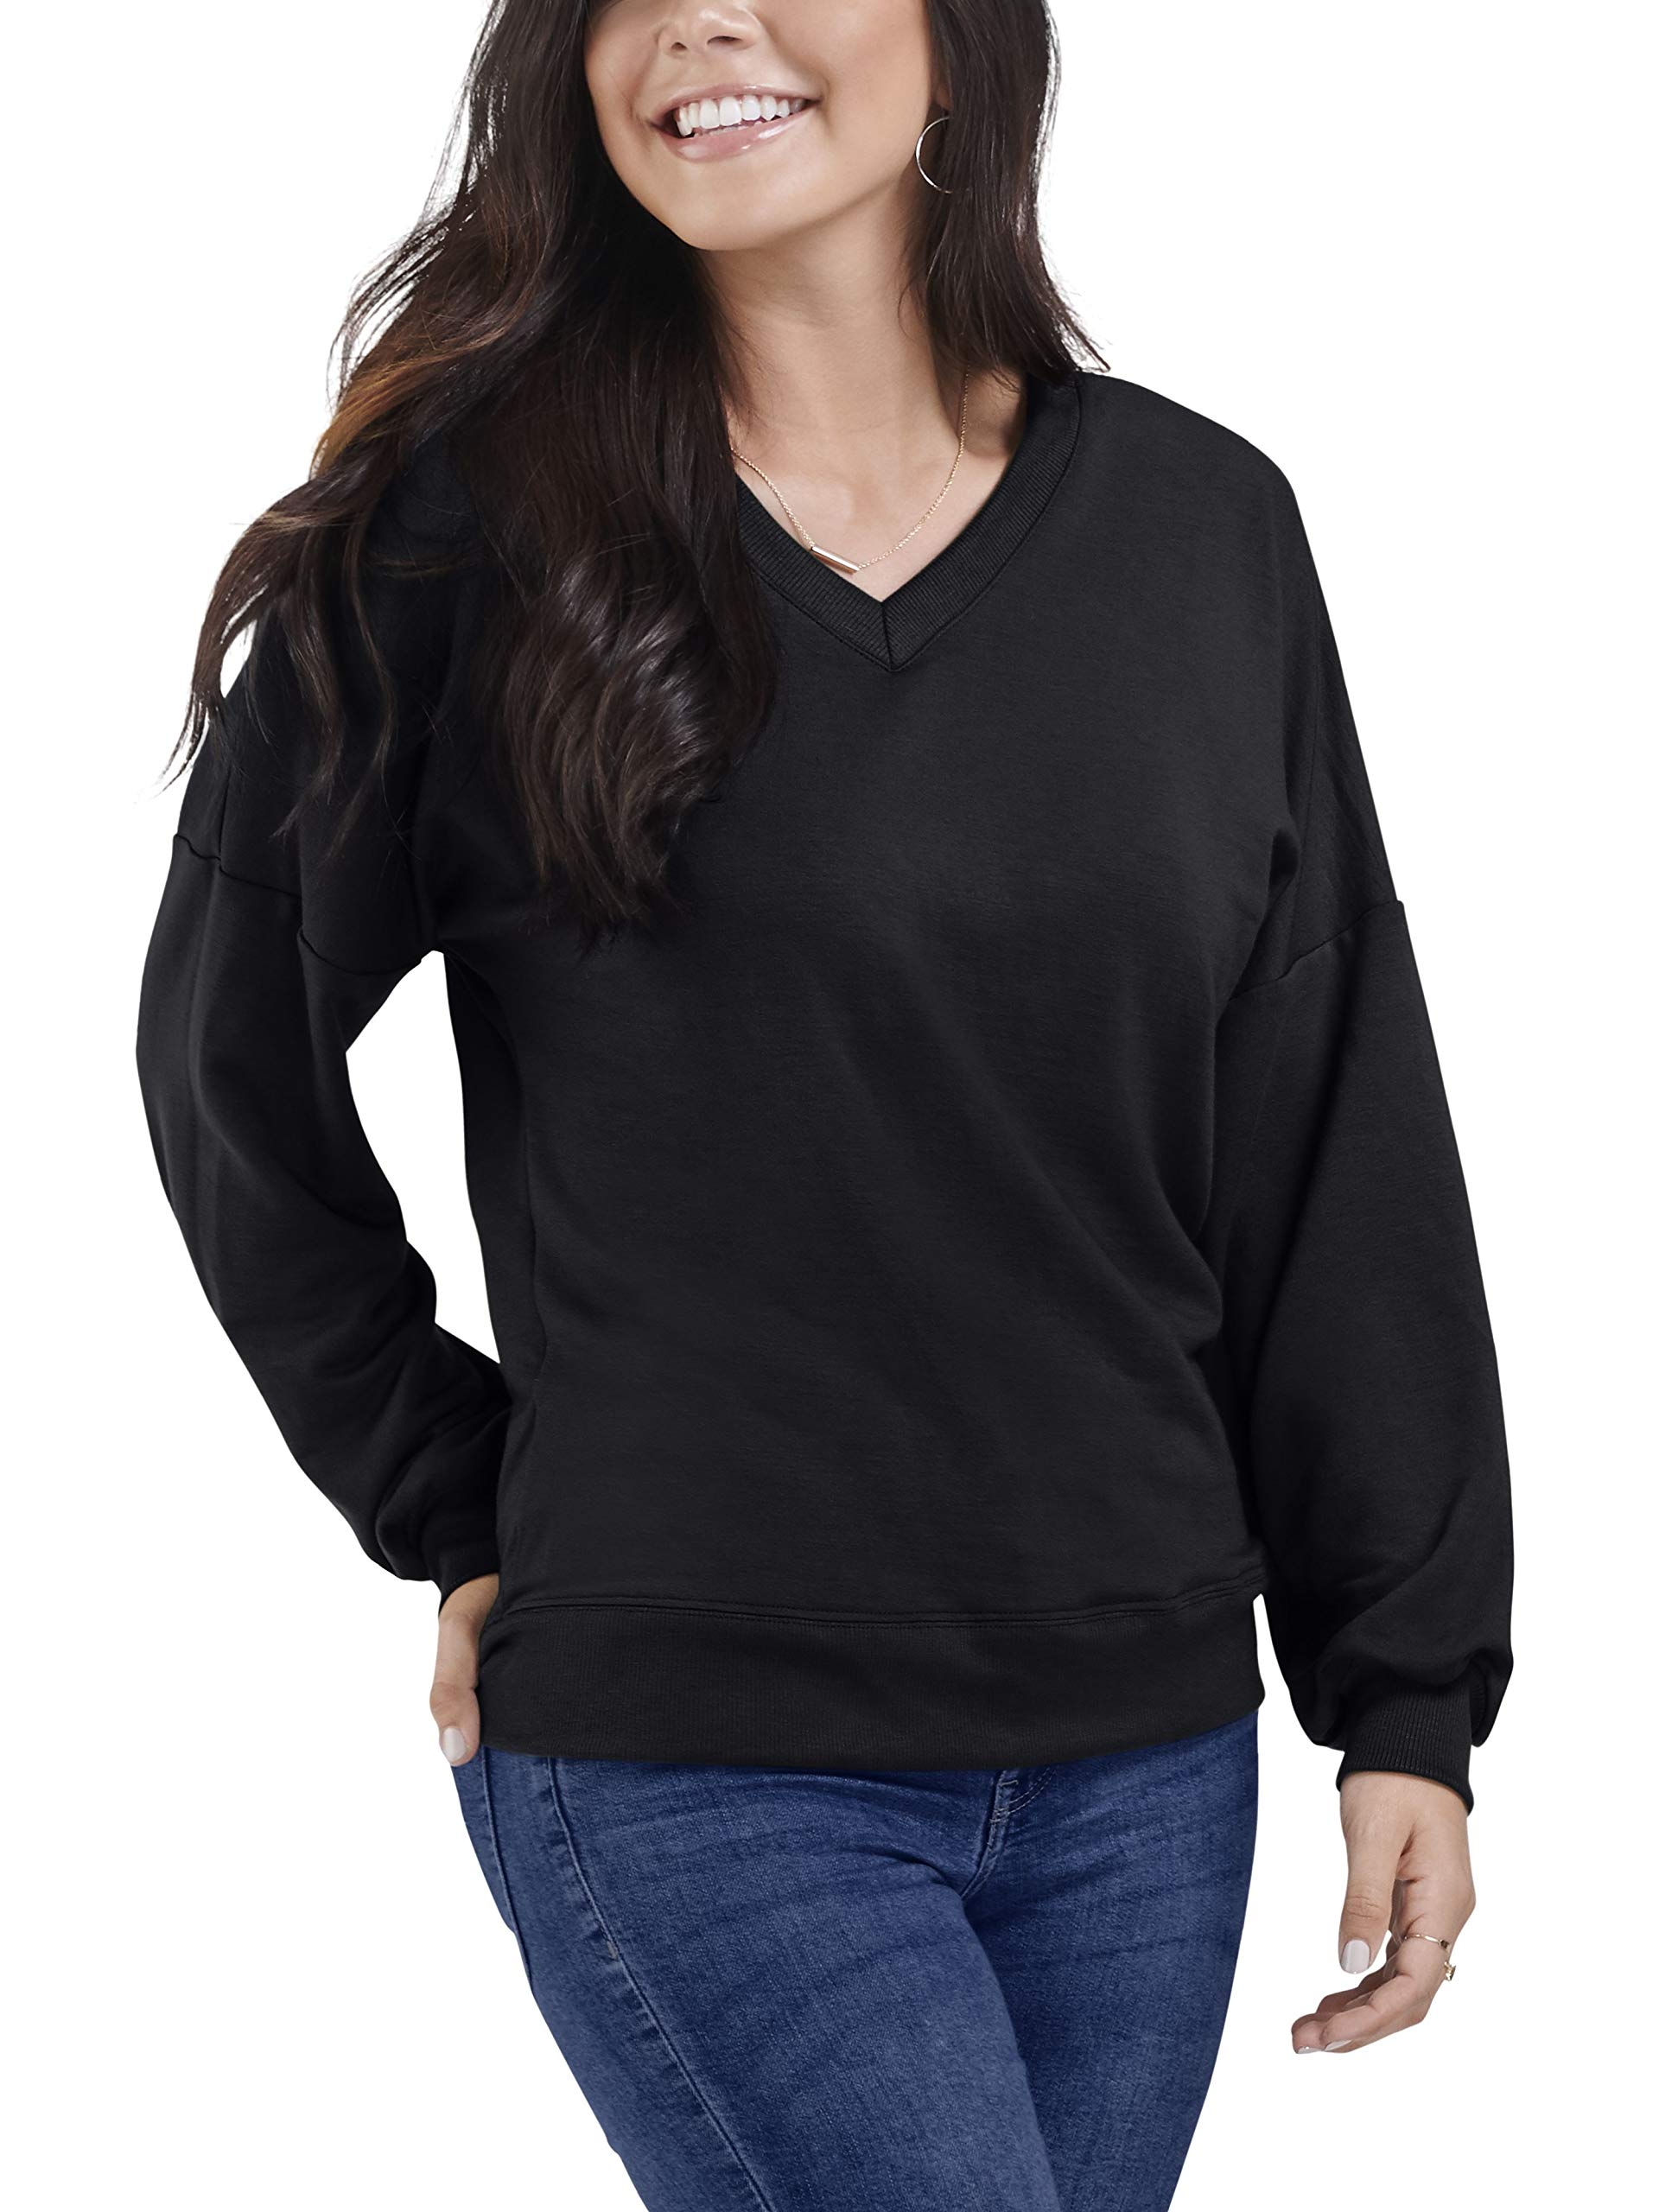 Seek No Further by Fruit of the Loom Women's Brushed Fleece Long Sleeve V Neck Blouse